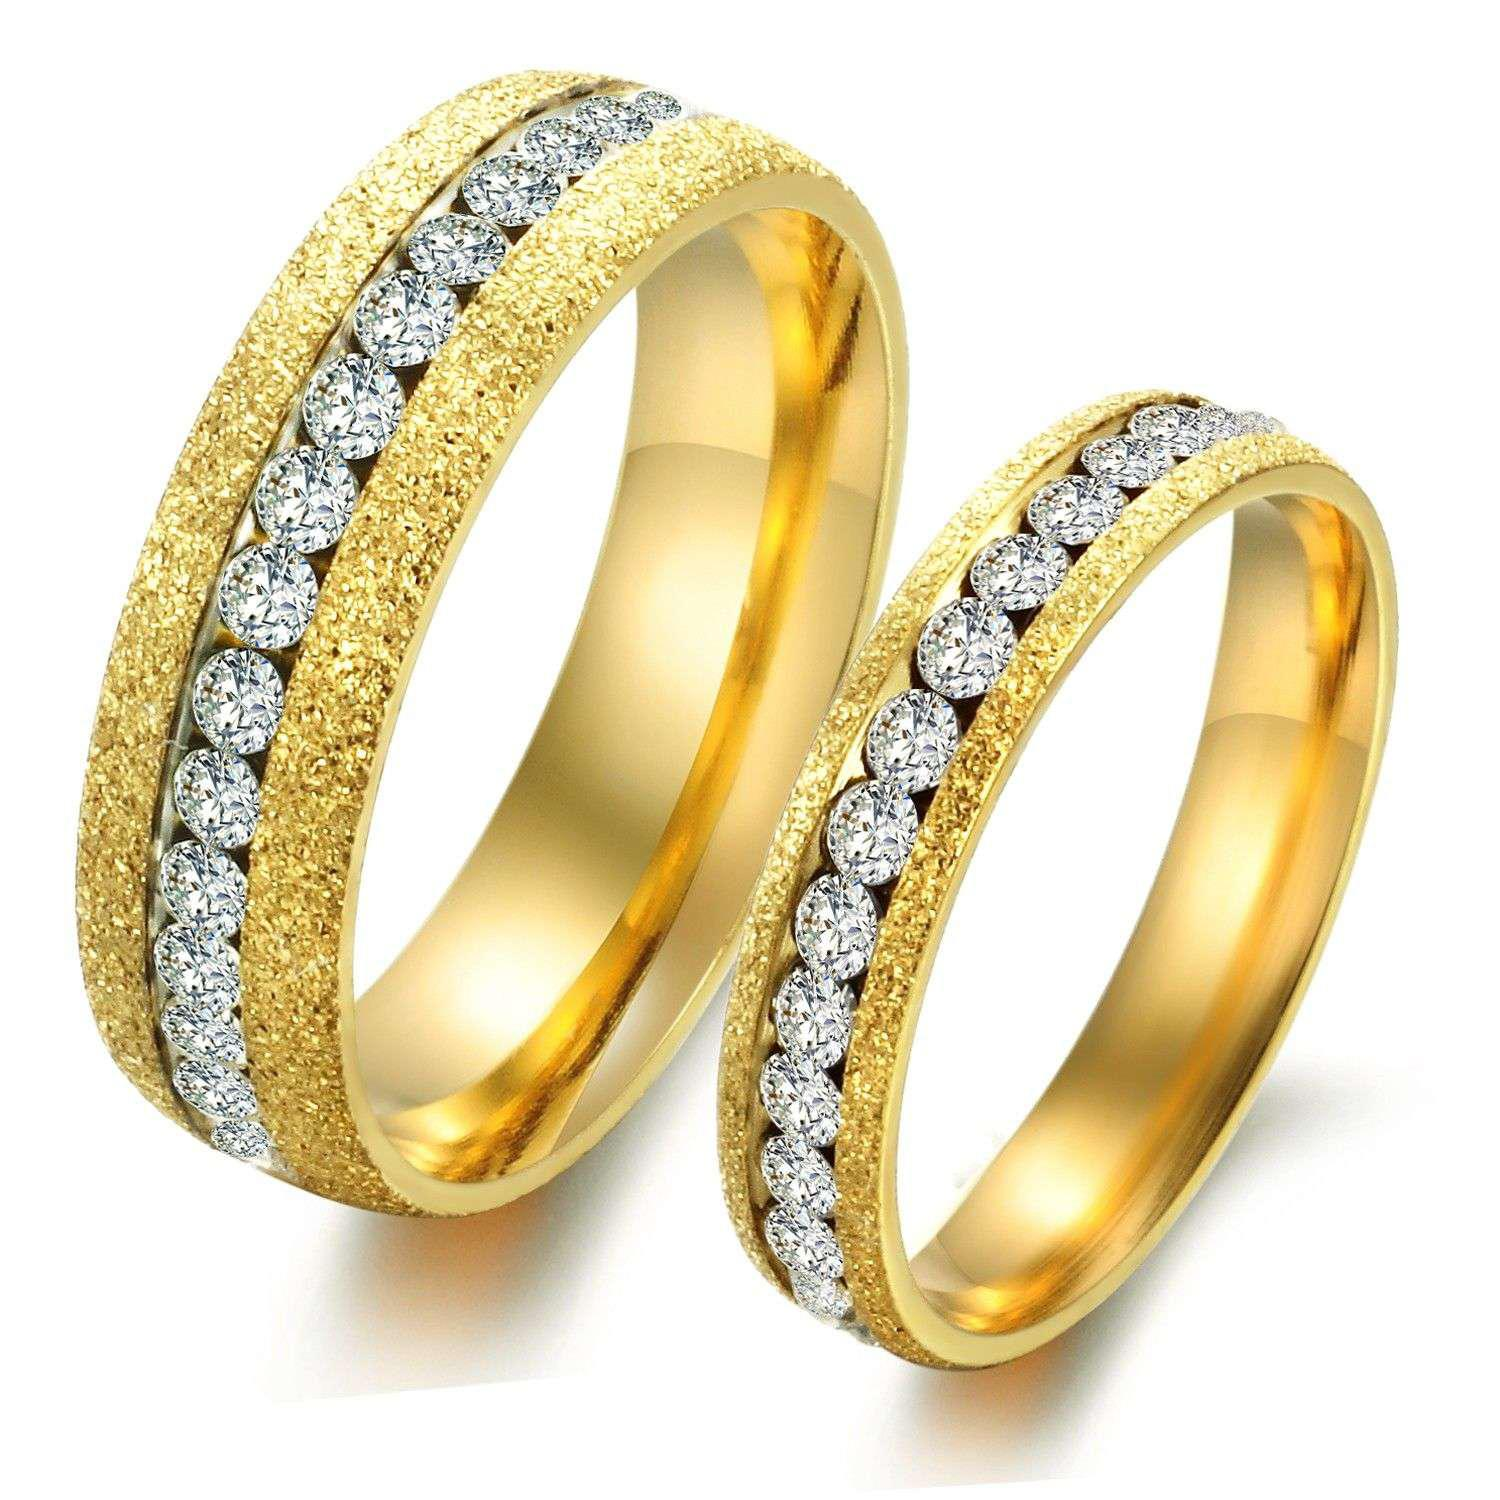 spin gold bridal prod resmode amp yellow korean kmart jewelry wid sharp hei b diamond usm op qlt sharpen engagement wedding rings